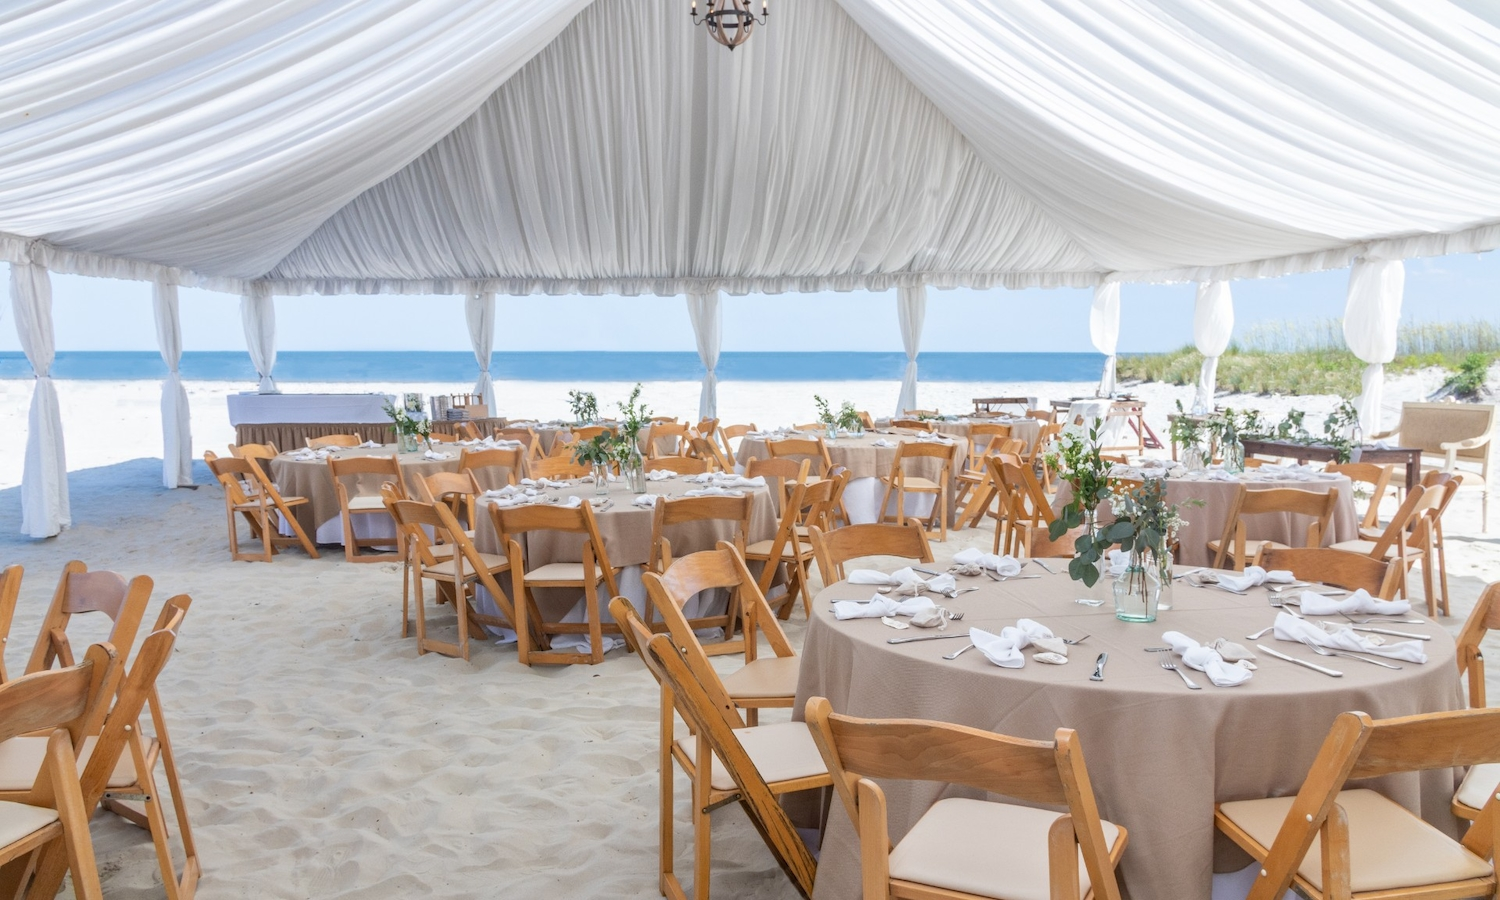 Tiki Beach Tent with Ocean View